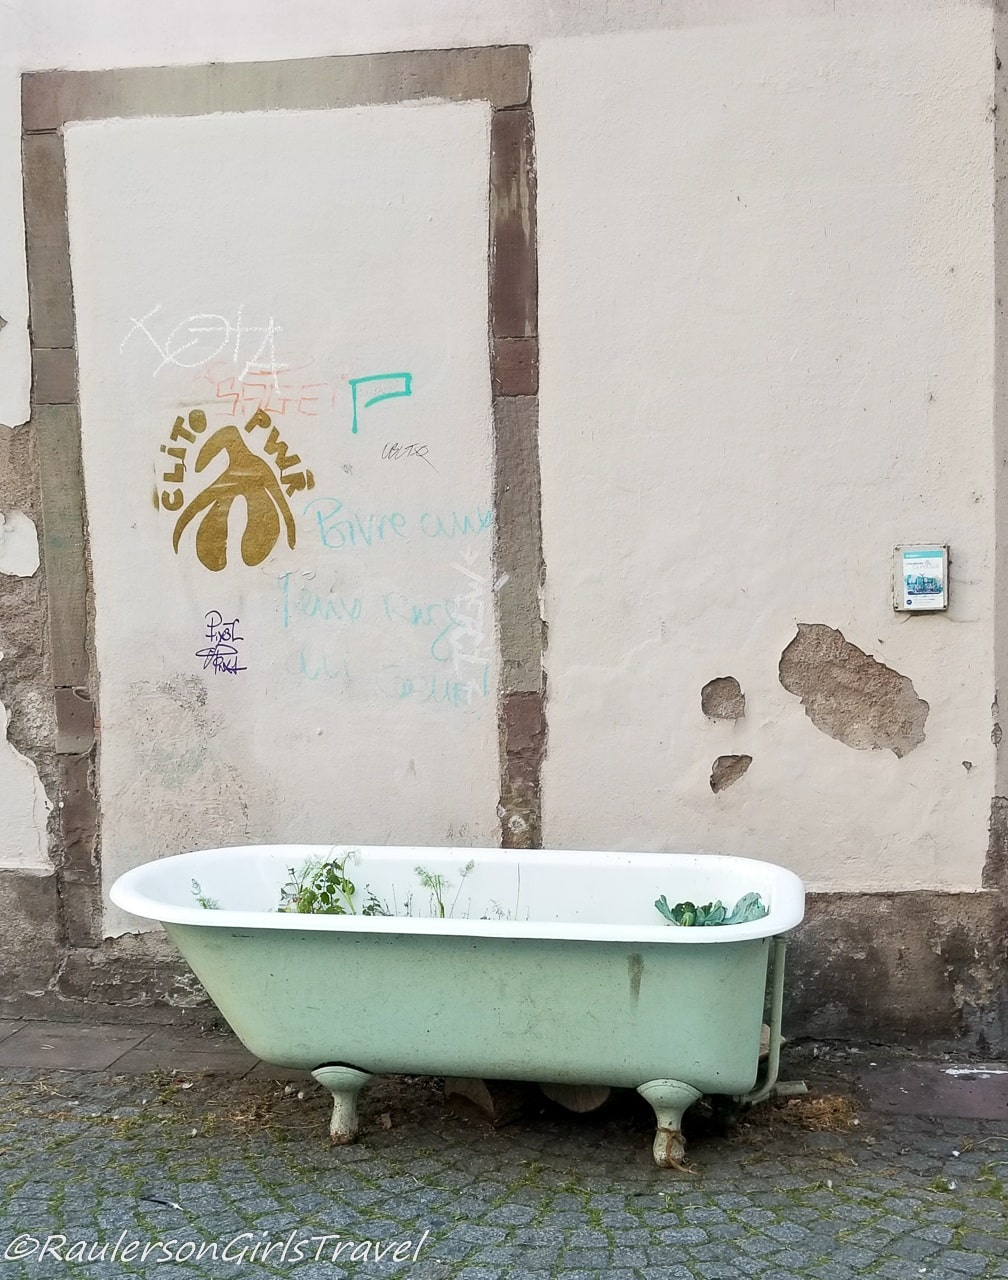 Bathtub with plants growing in it in Strasbourg